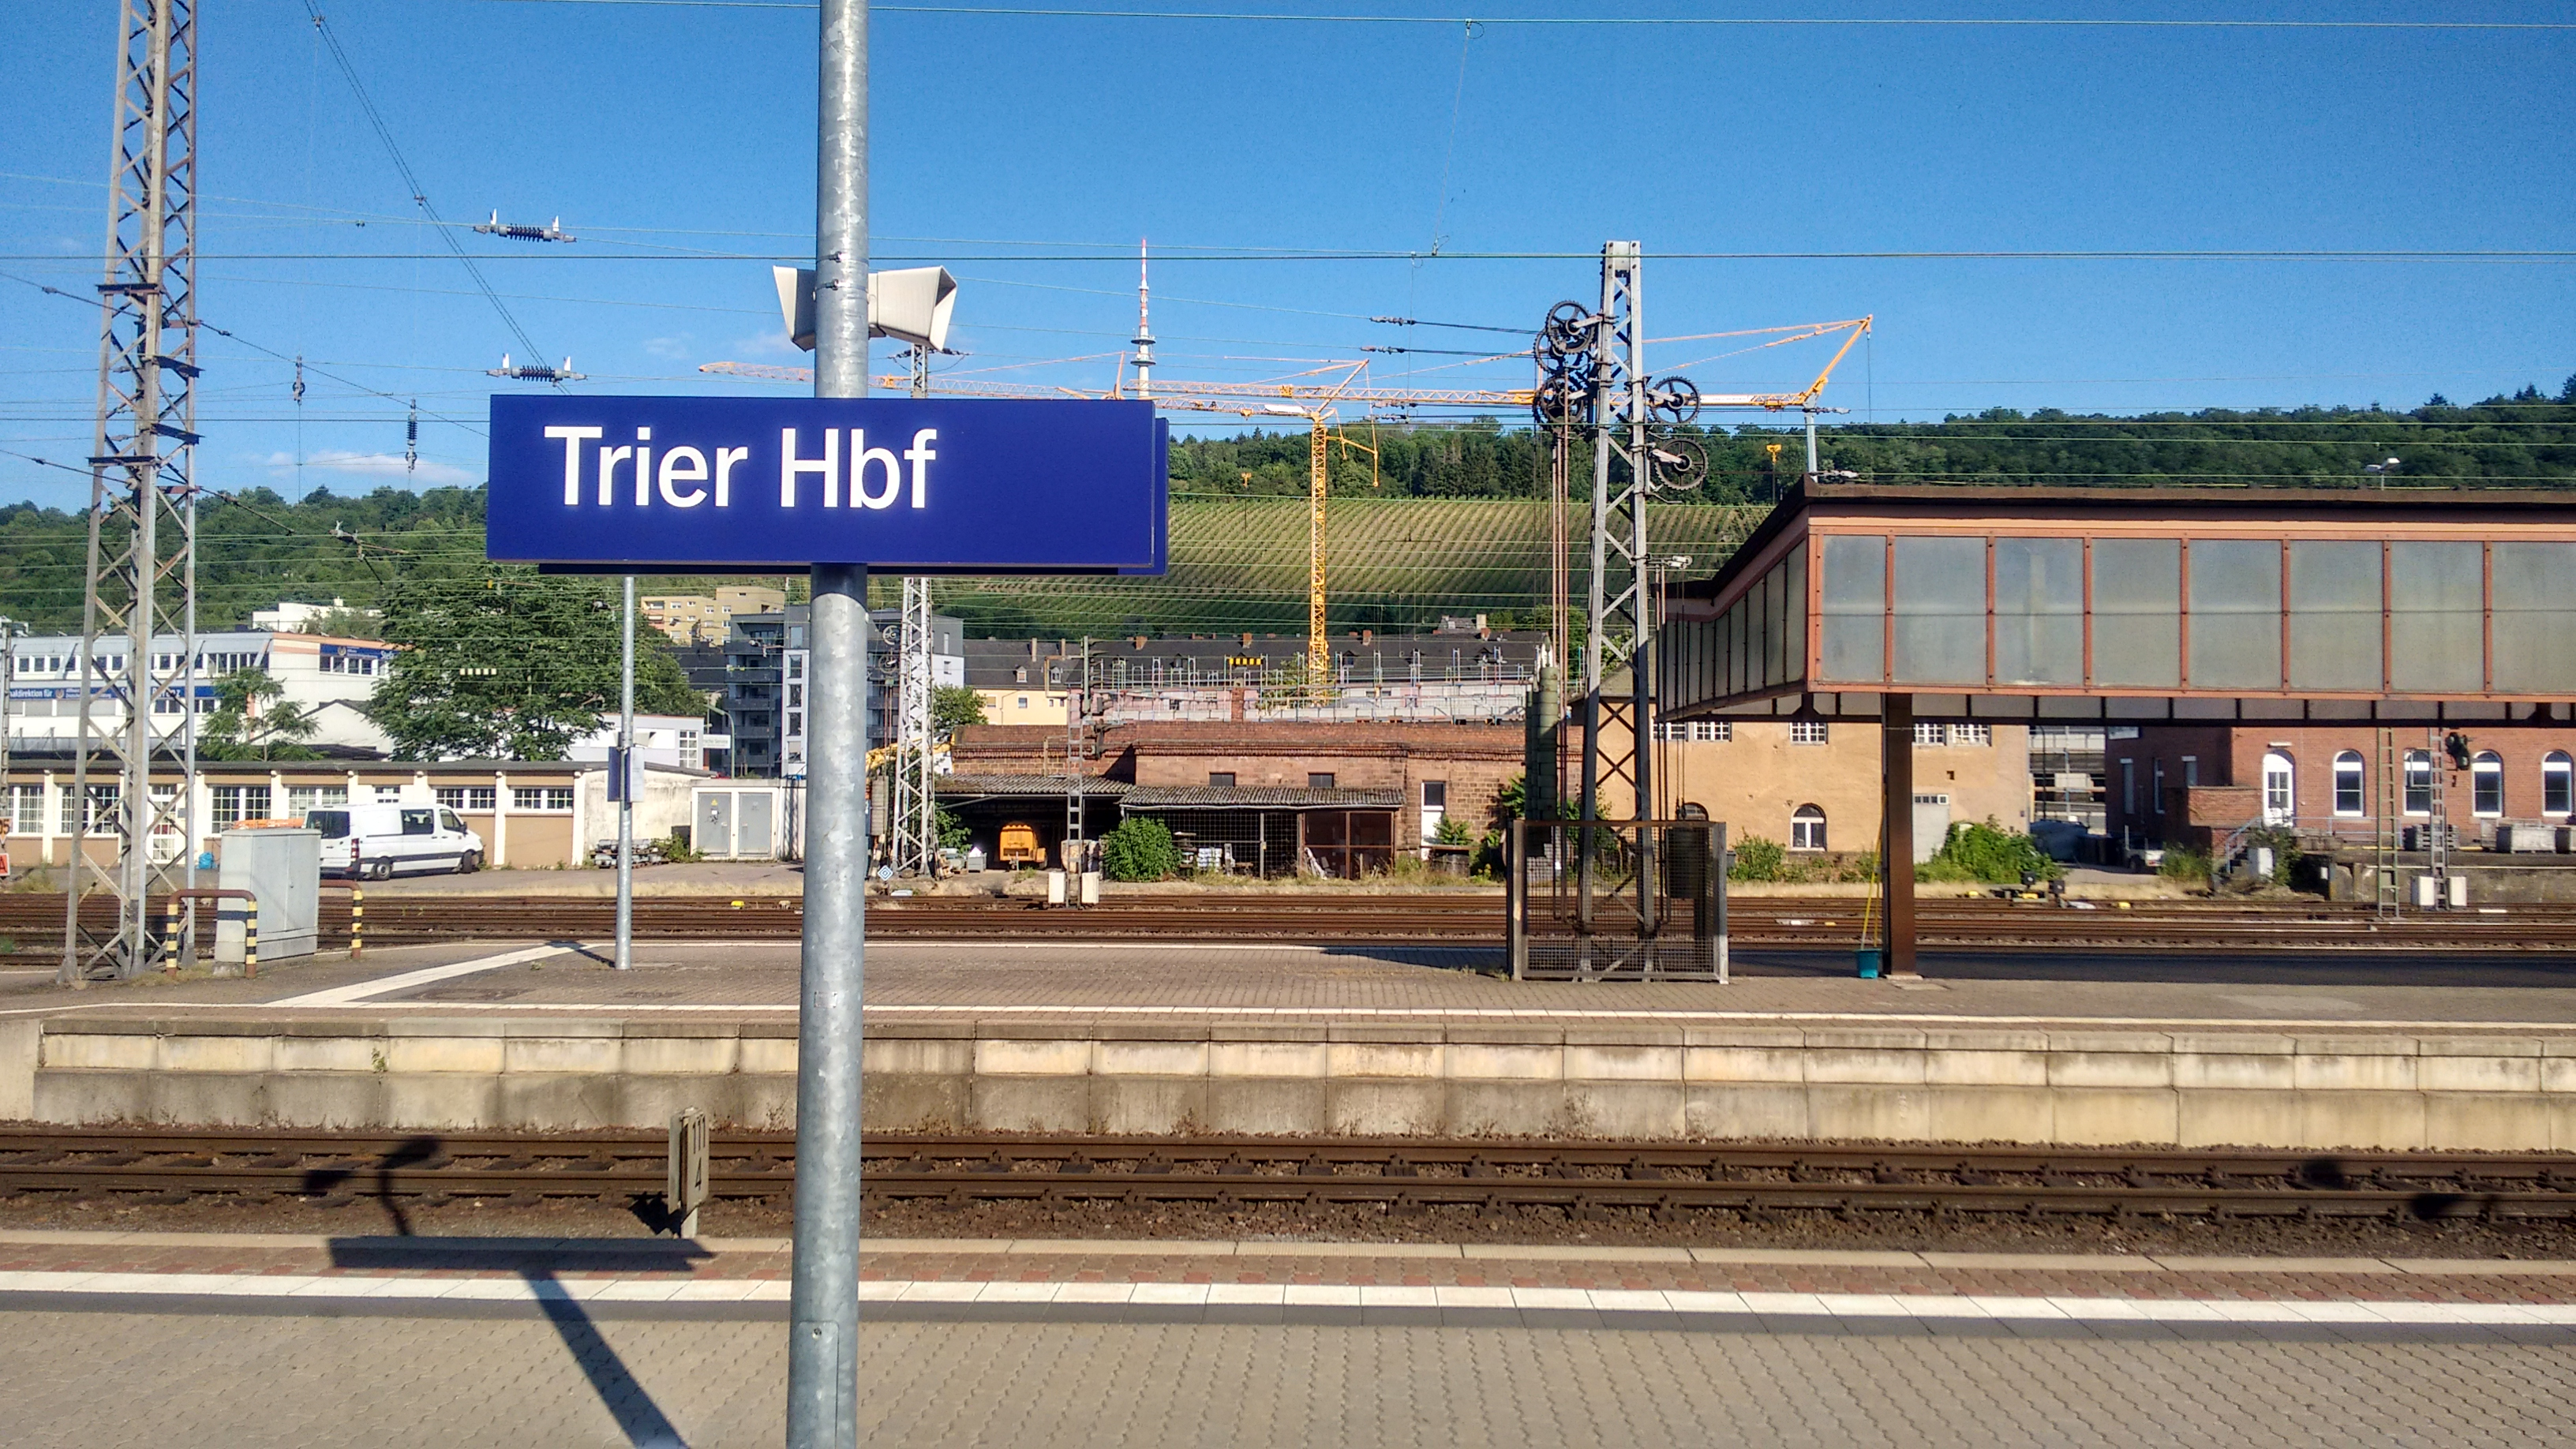 FileBahnhofsschild Trier Hbf 1706241822jpg Wikimedia Commons